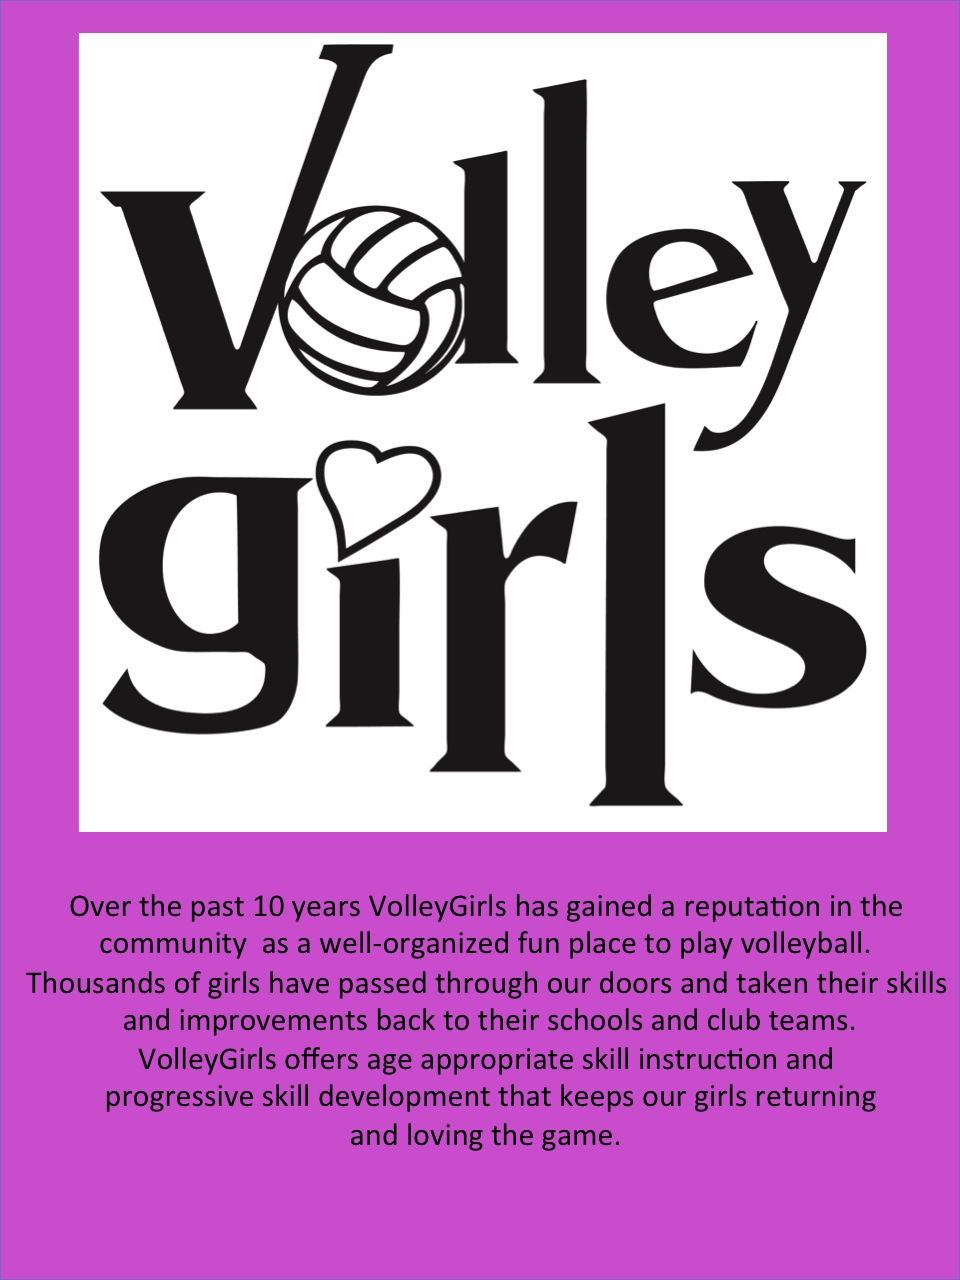 Over the past 10 years, VolleyGirls Volleyball has earned a reputation in our community (Burlington, Ontario and surrounding areas) as a well organized, fun place to make friends and play indoor and beach volleyball. Thousands of girls have risen through our programs and taken their volleyball skills and improvements back to their local schools and club teams. VolleyGirls offers age appropriate volleyball skill instruction and progressive volleyball skill development that keeps our girls returning and loving the game.